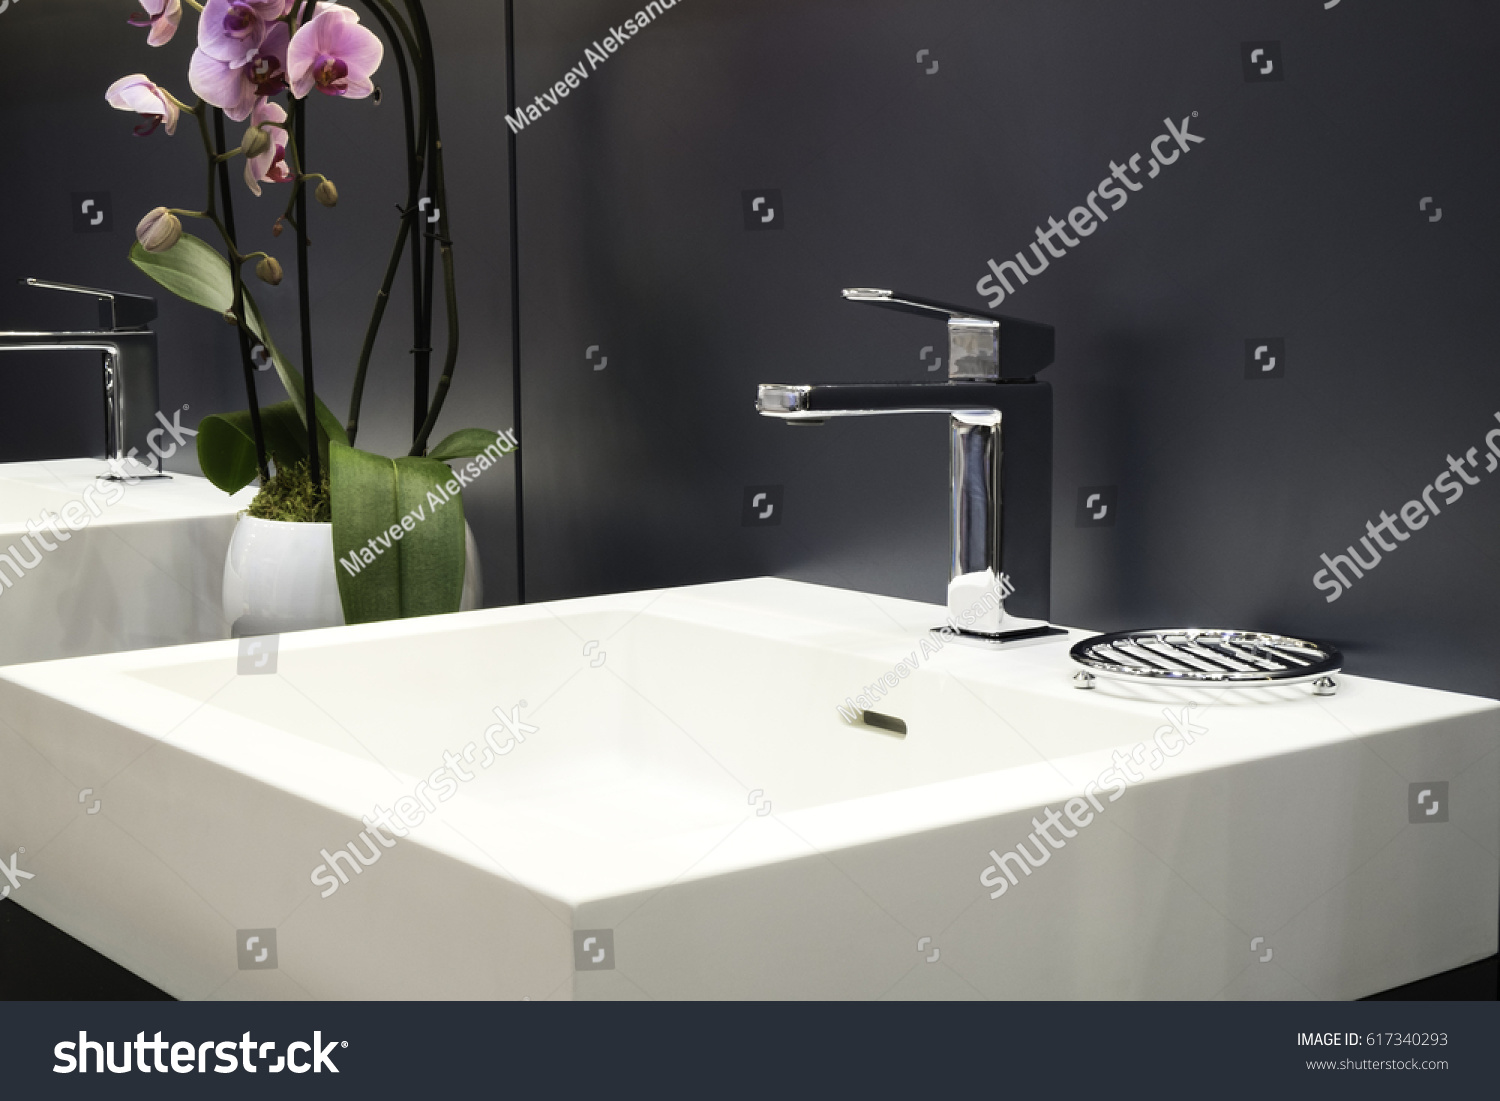 Luxury Faucet Mixer On White Sink Stock Photo (Edit Now) 617340293 ...